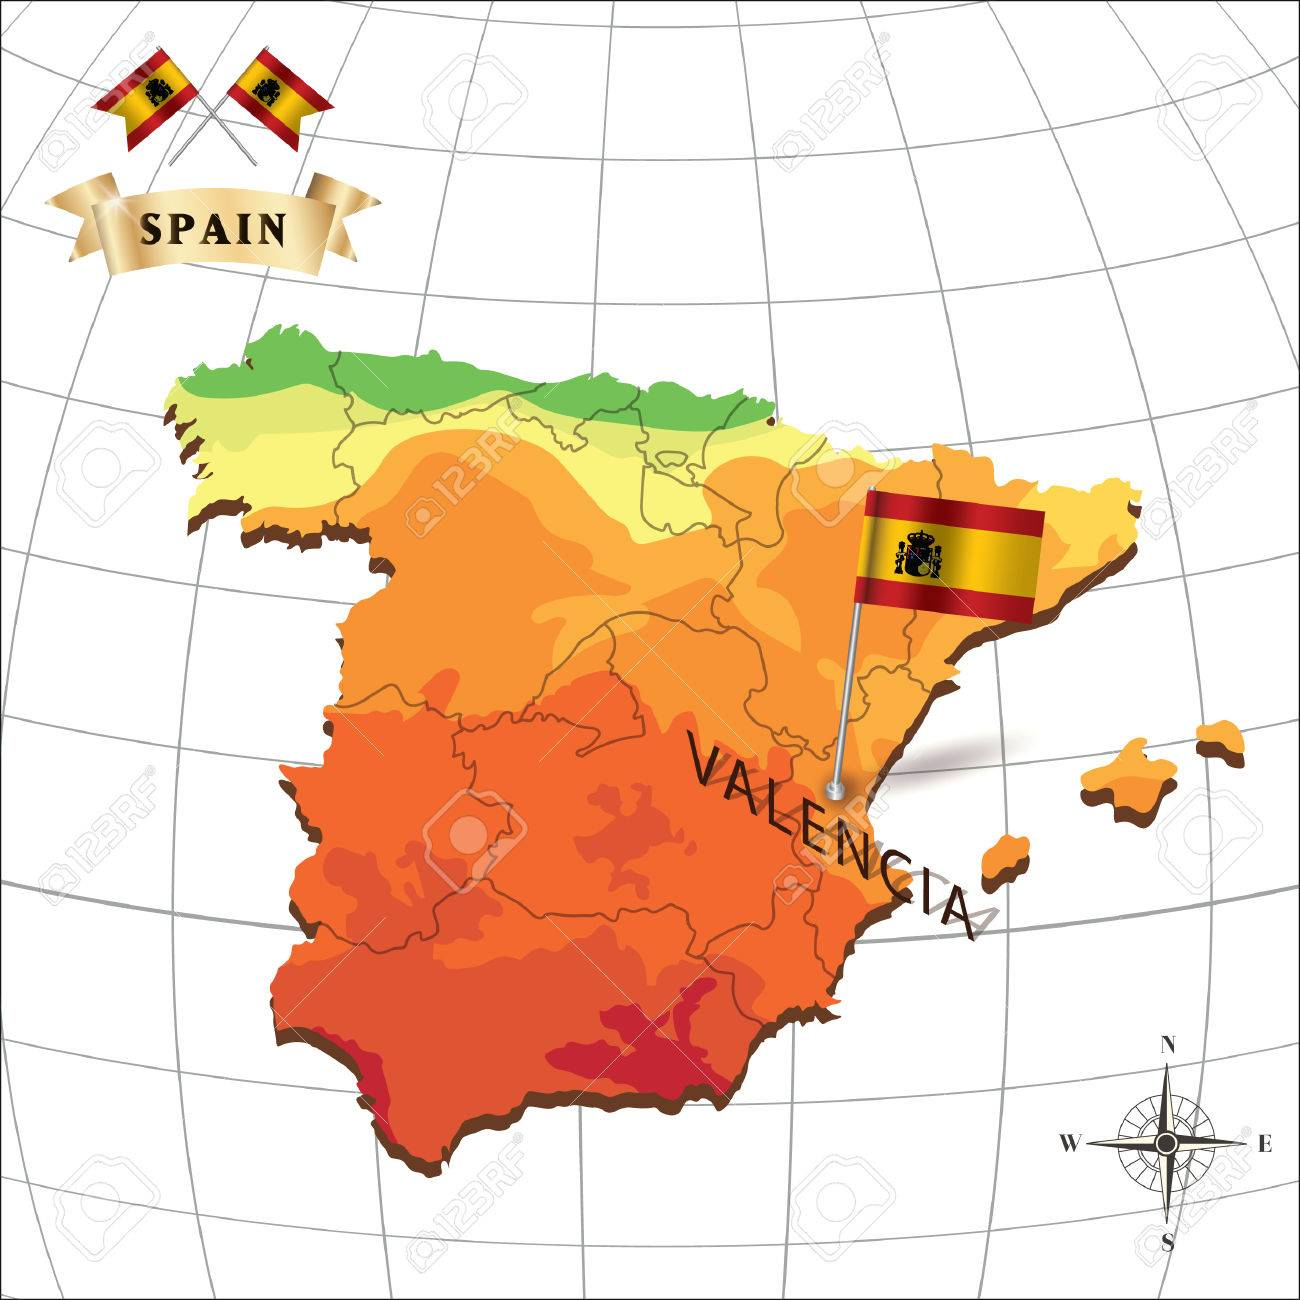 Map Of Spain Valencia.Map Of Spain With Valencia